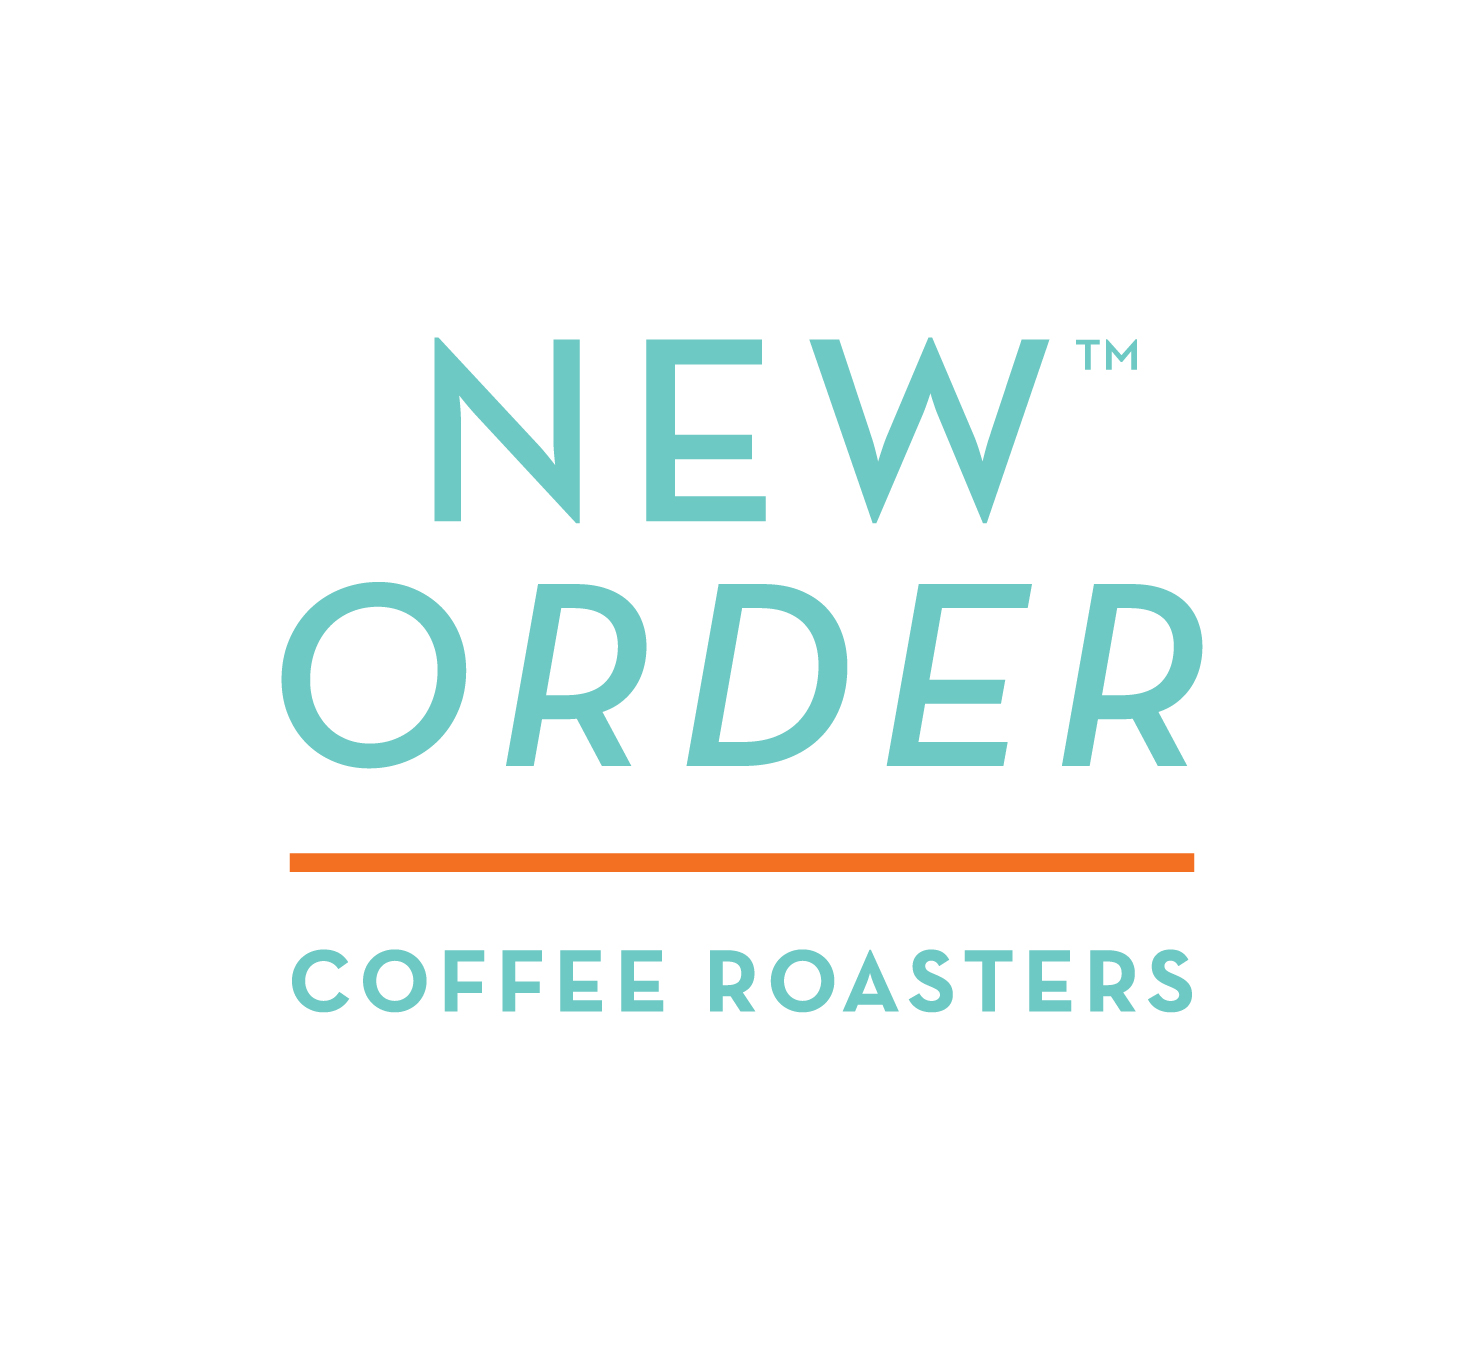 NEW ORDER COFFEE ROASTERS